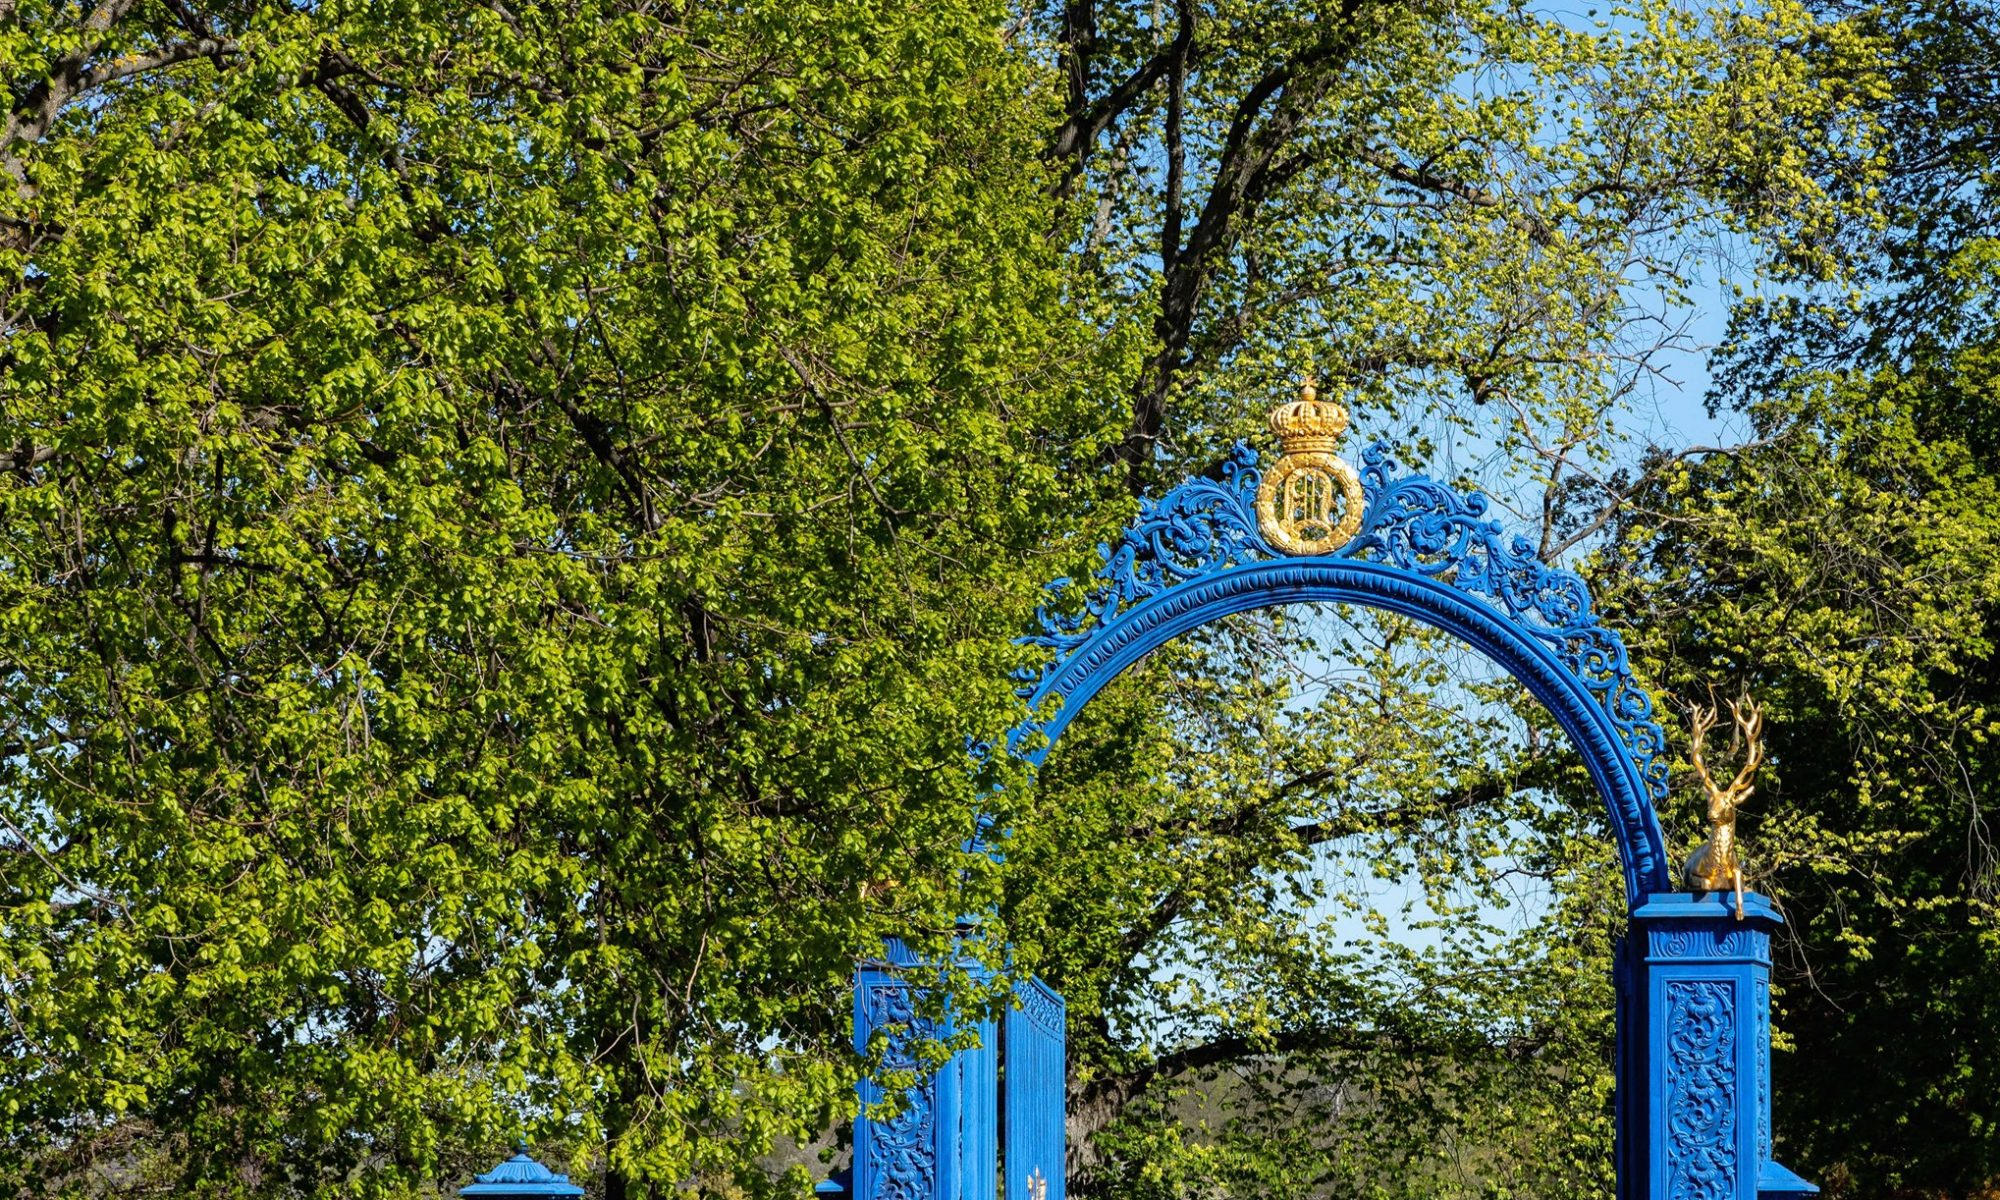 Summer at Djurgården: 8 things you don't want to miss!